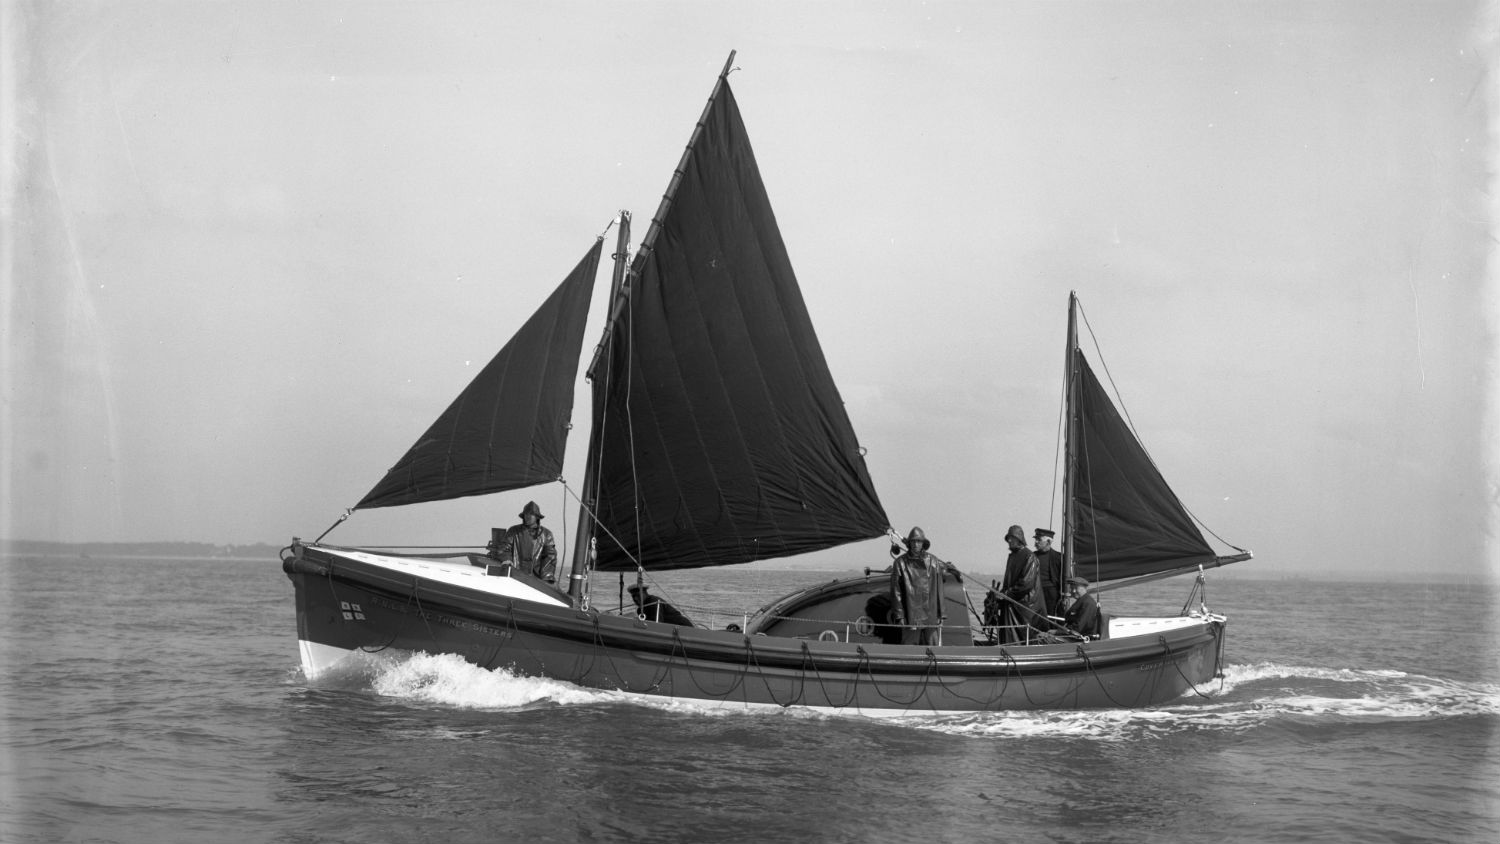 Black and white image of Coverack lifeboat, The Three Sisters, while on trials